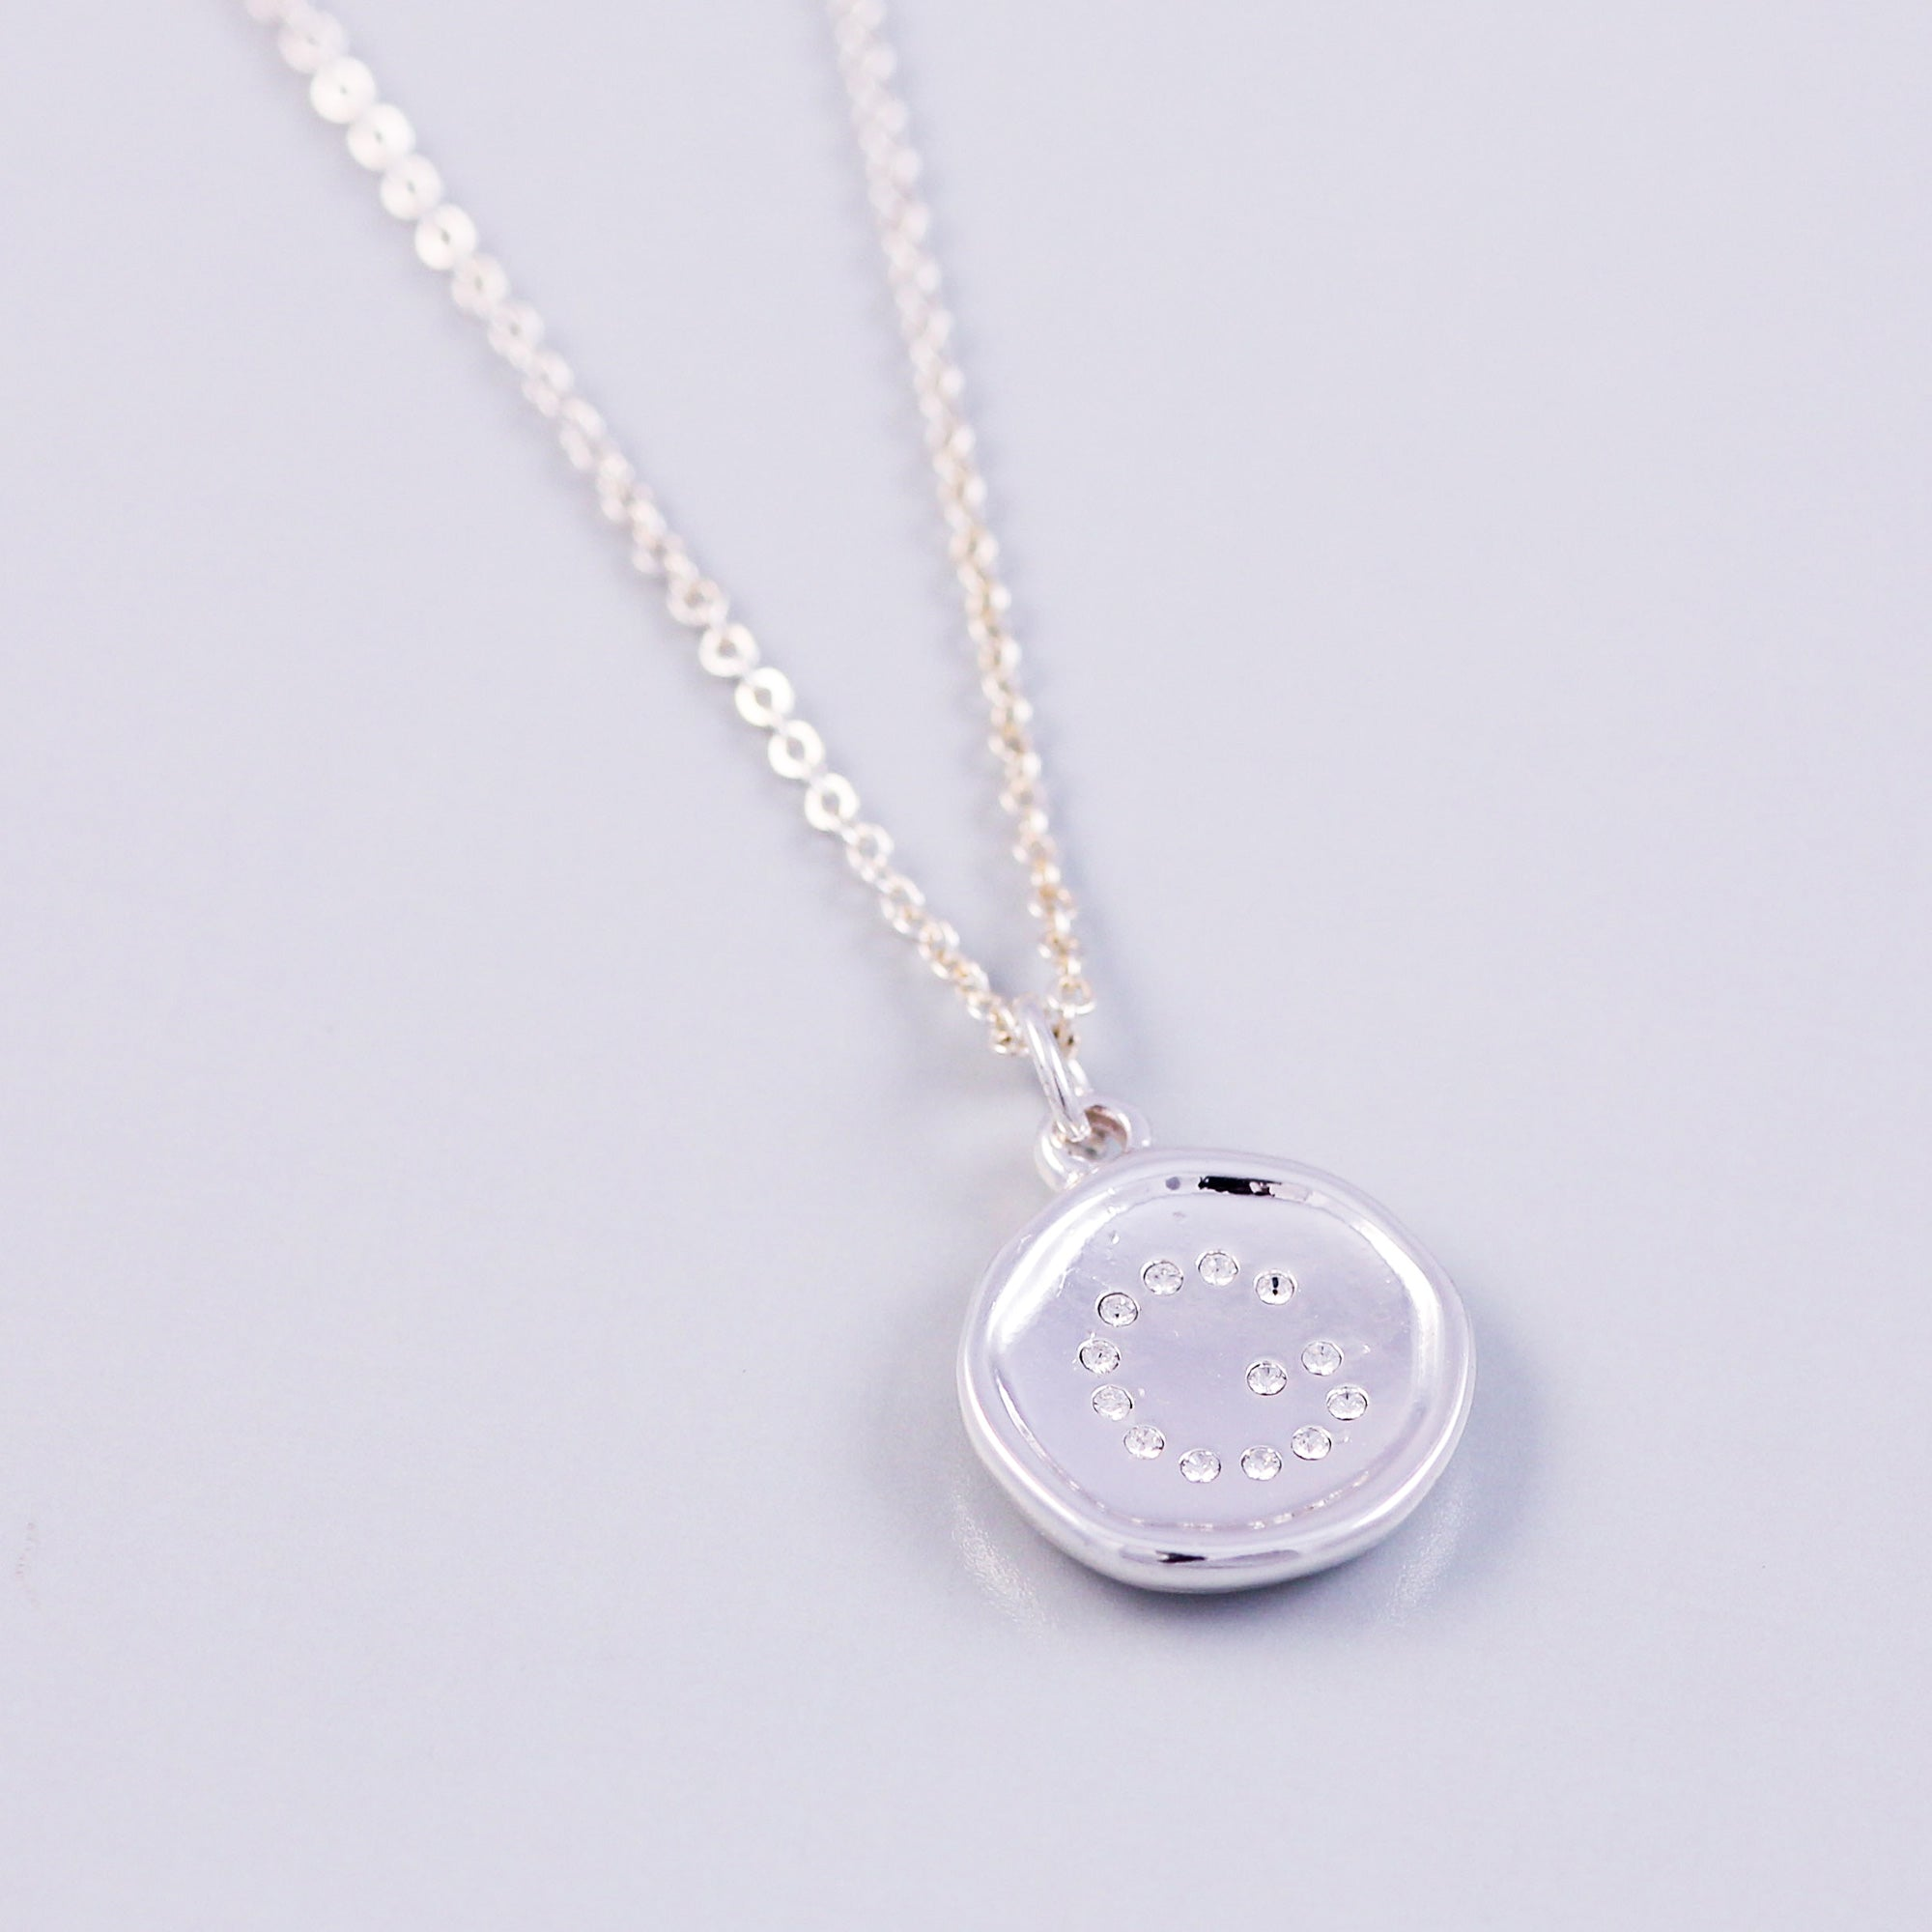 product necklaces initial g bling page letter pendant w pendants large getblingy charms charm category necklace